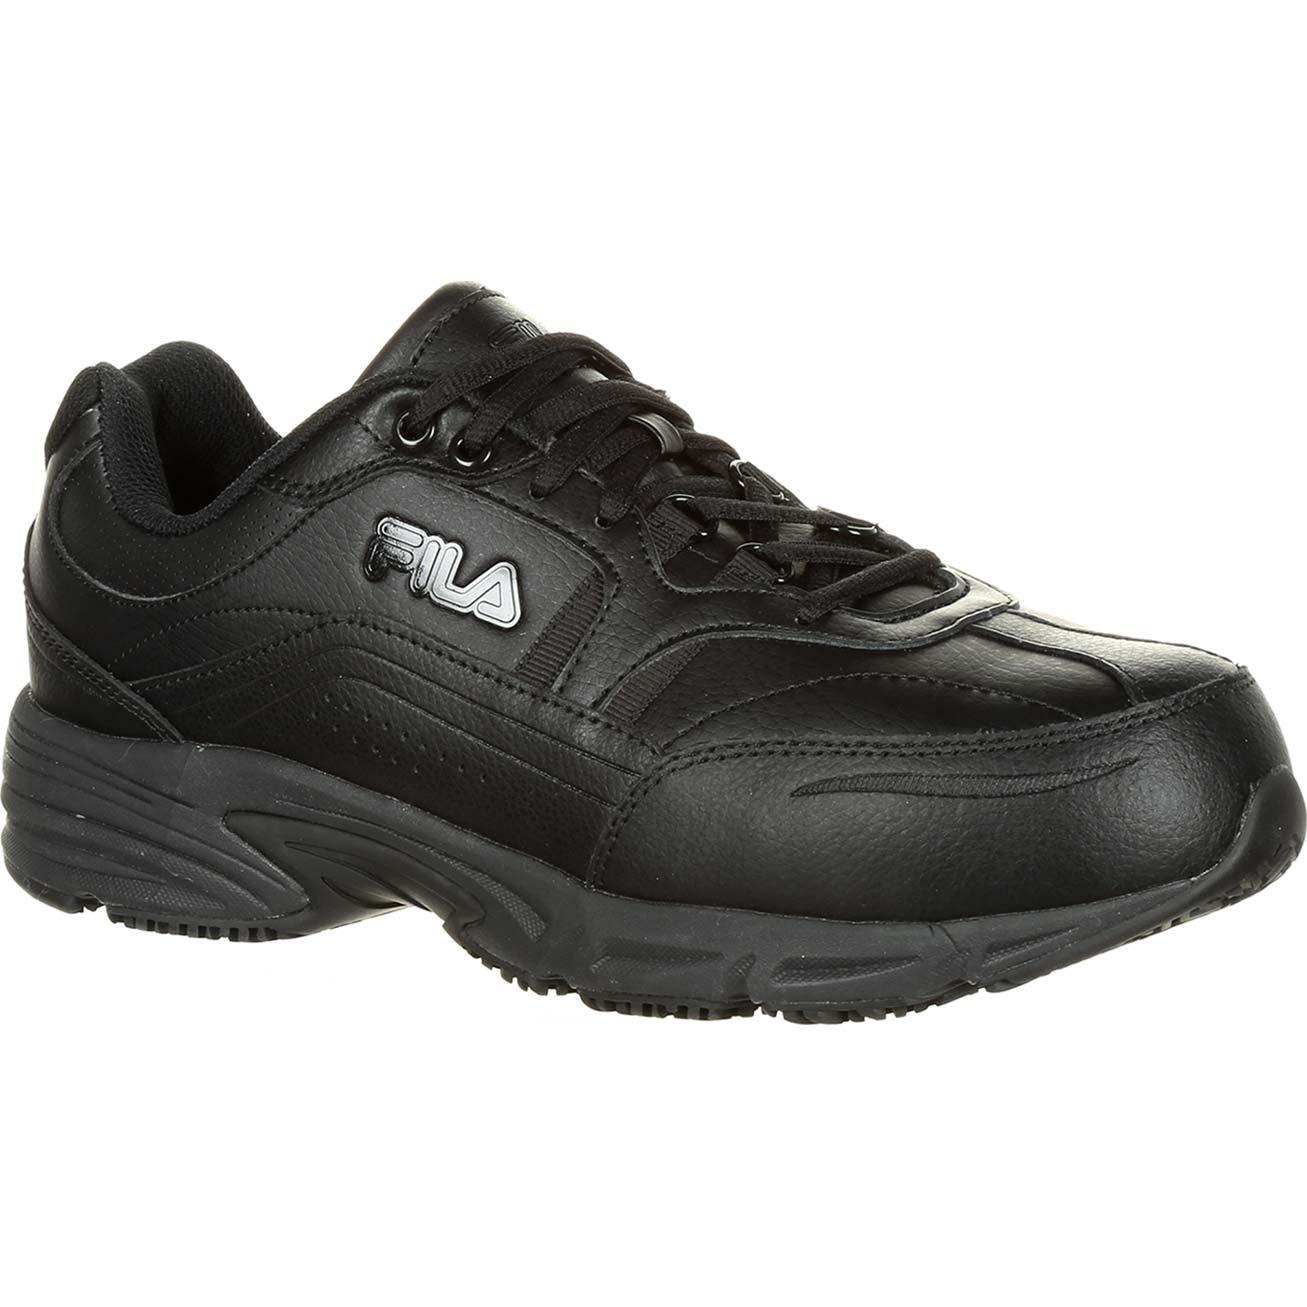 Fila Memory Workshift Mens Slip Resistant Athletic Shoes